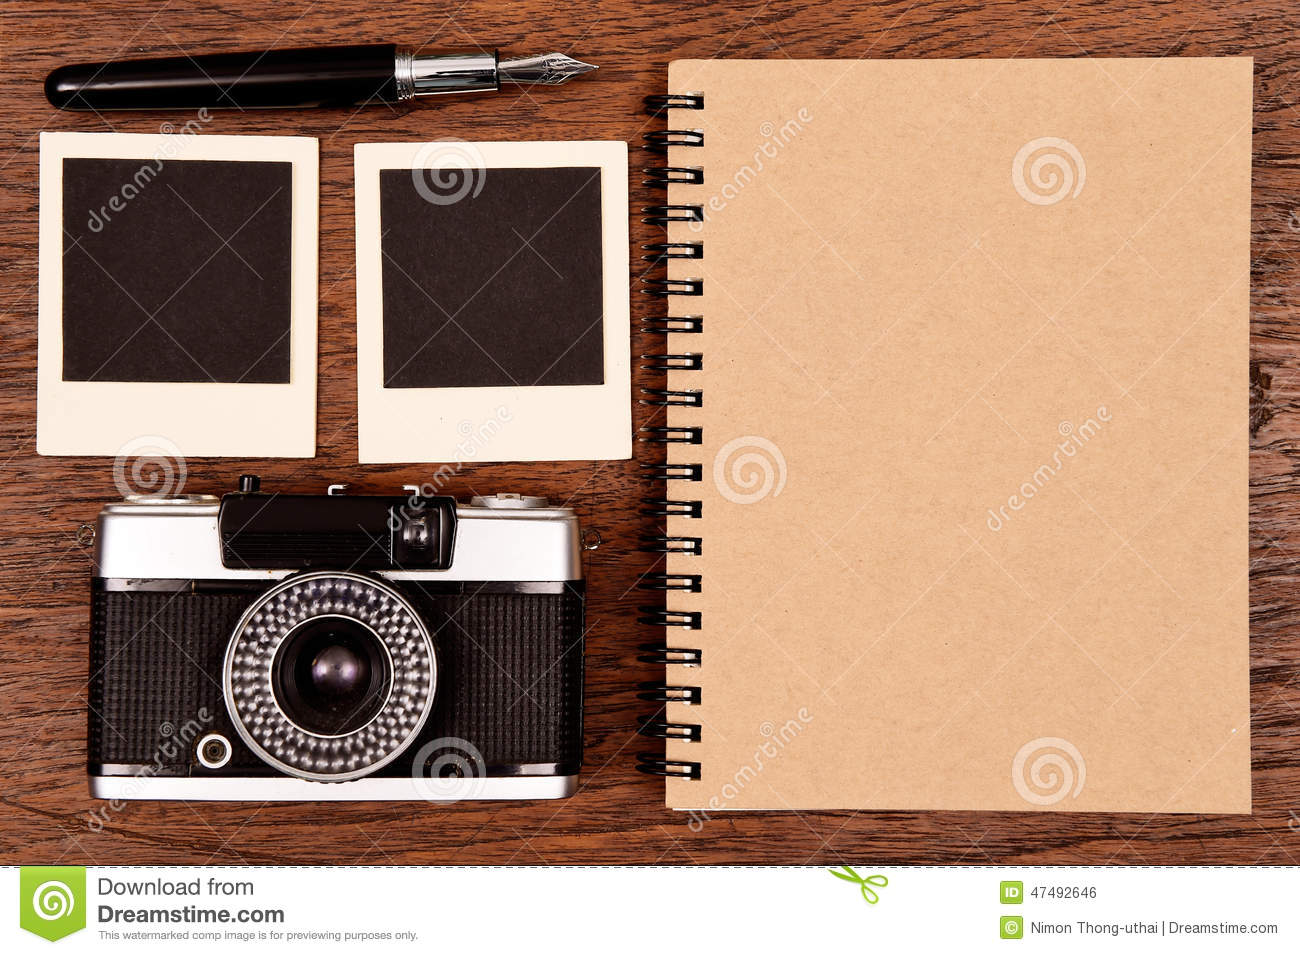 Notebook With Pen, Photo Frames And Camera Stock Photo - Image of ...